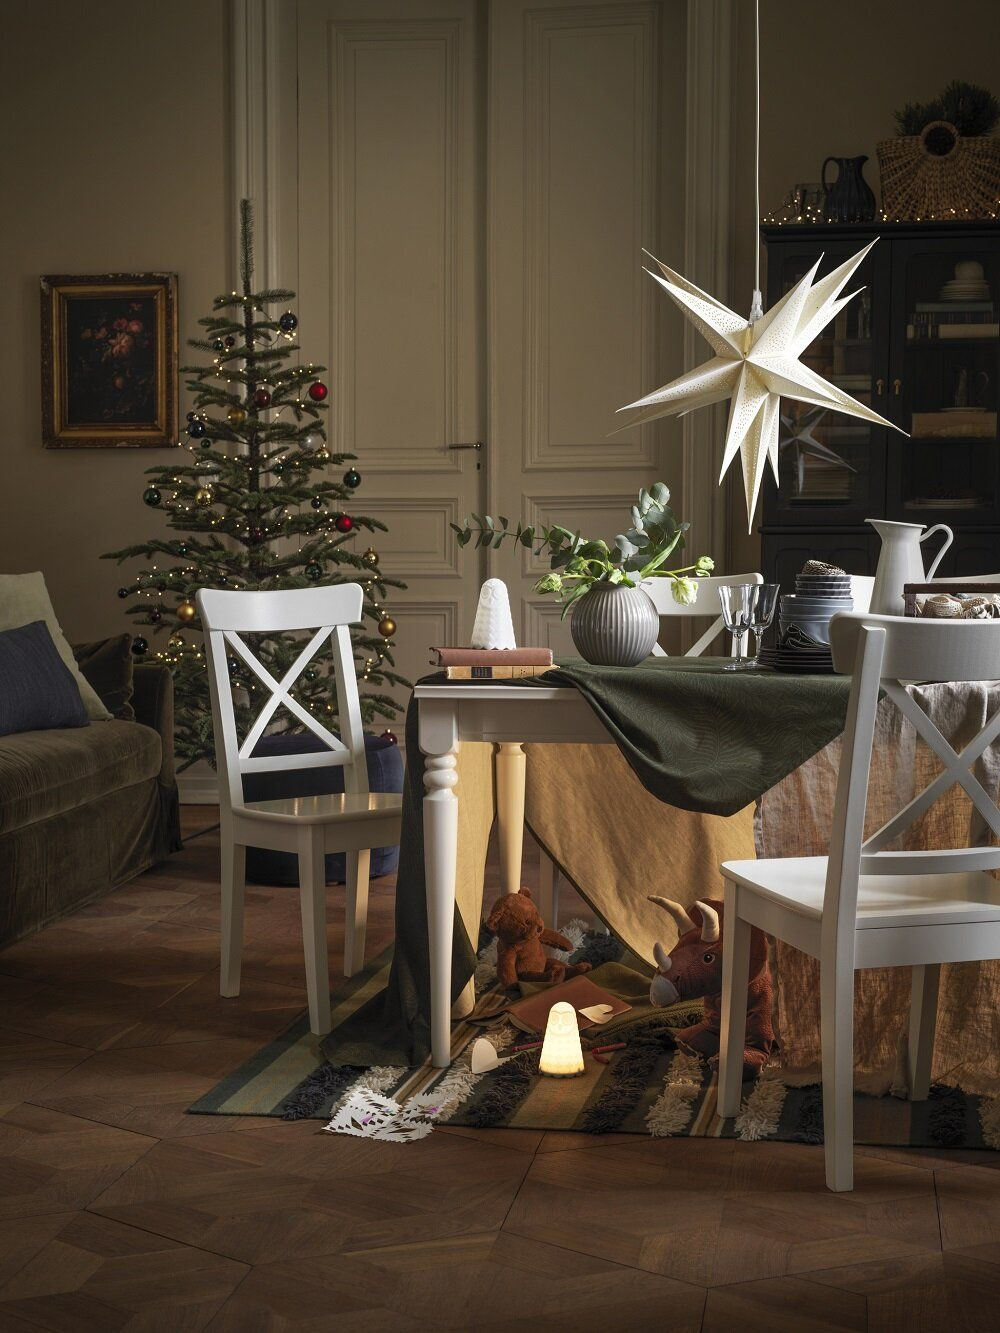 Ikea Christmas Collection 2020 Create Your Own Magical Moments The Nordroom In 2020 Ikea Christmas Decorations Ikea Christmas Decor